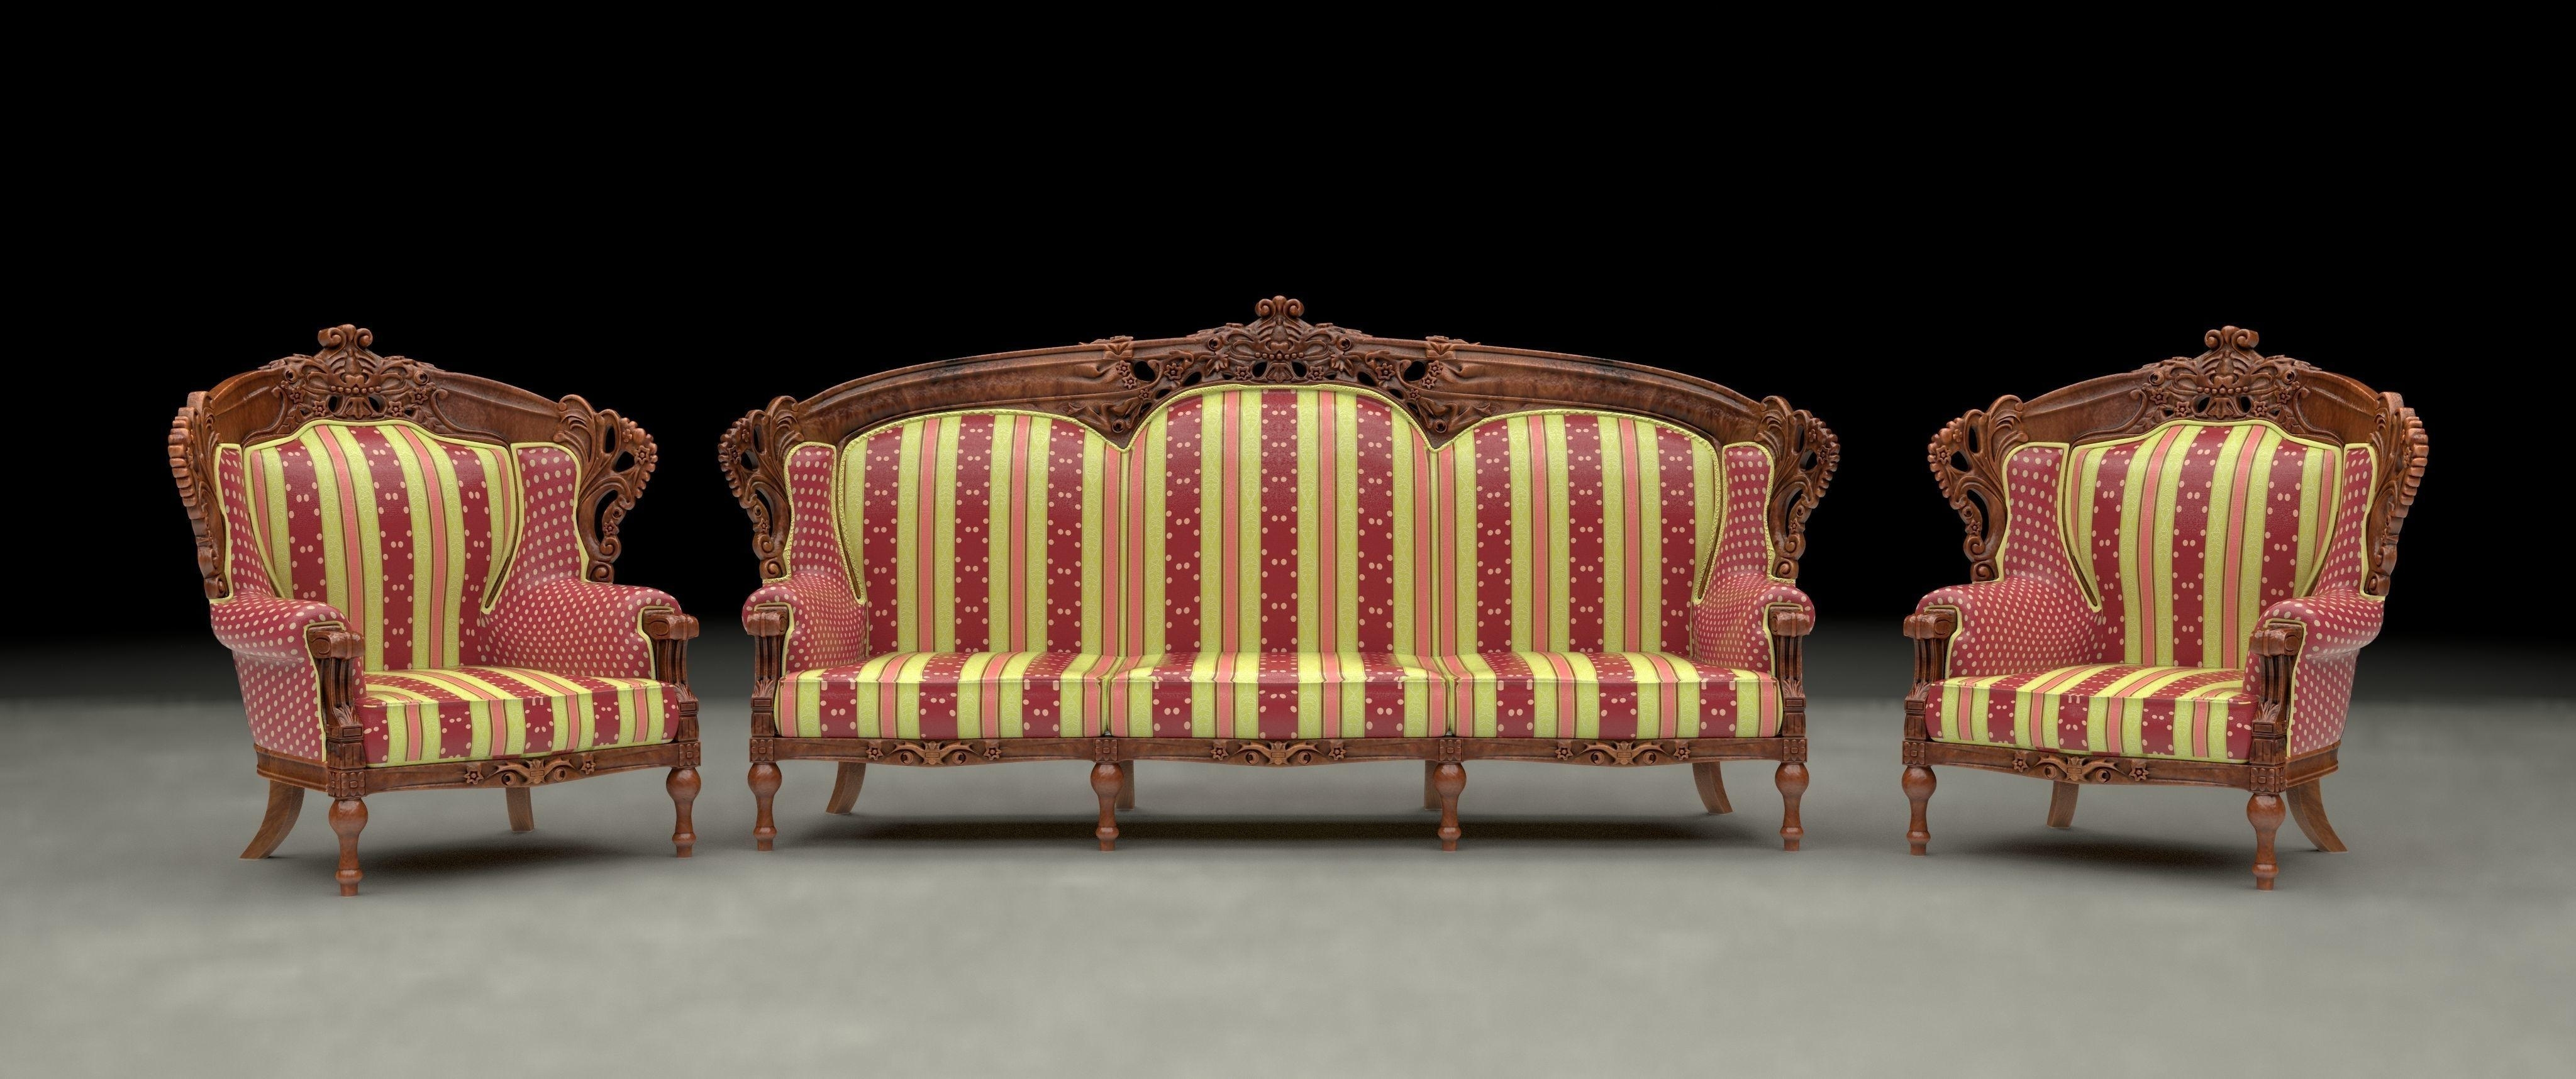 3D Model Ethnic Carved Wood Sofa And Armchair | Cgtrader With Regard To Carved Wood Sofas (Image 3 of 20)